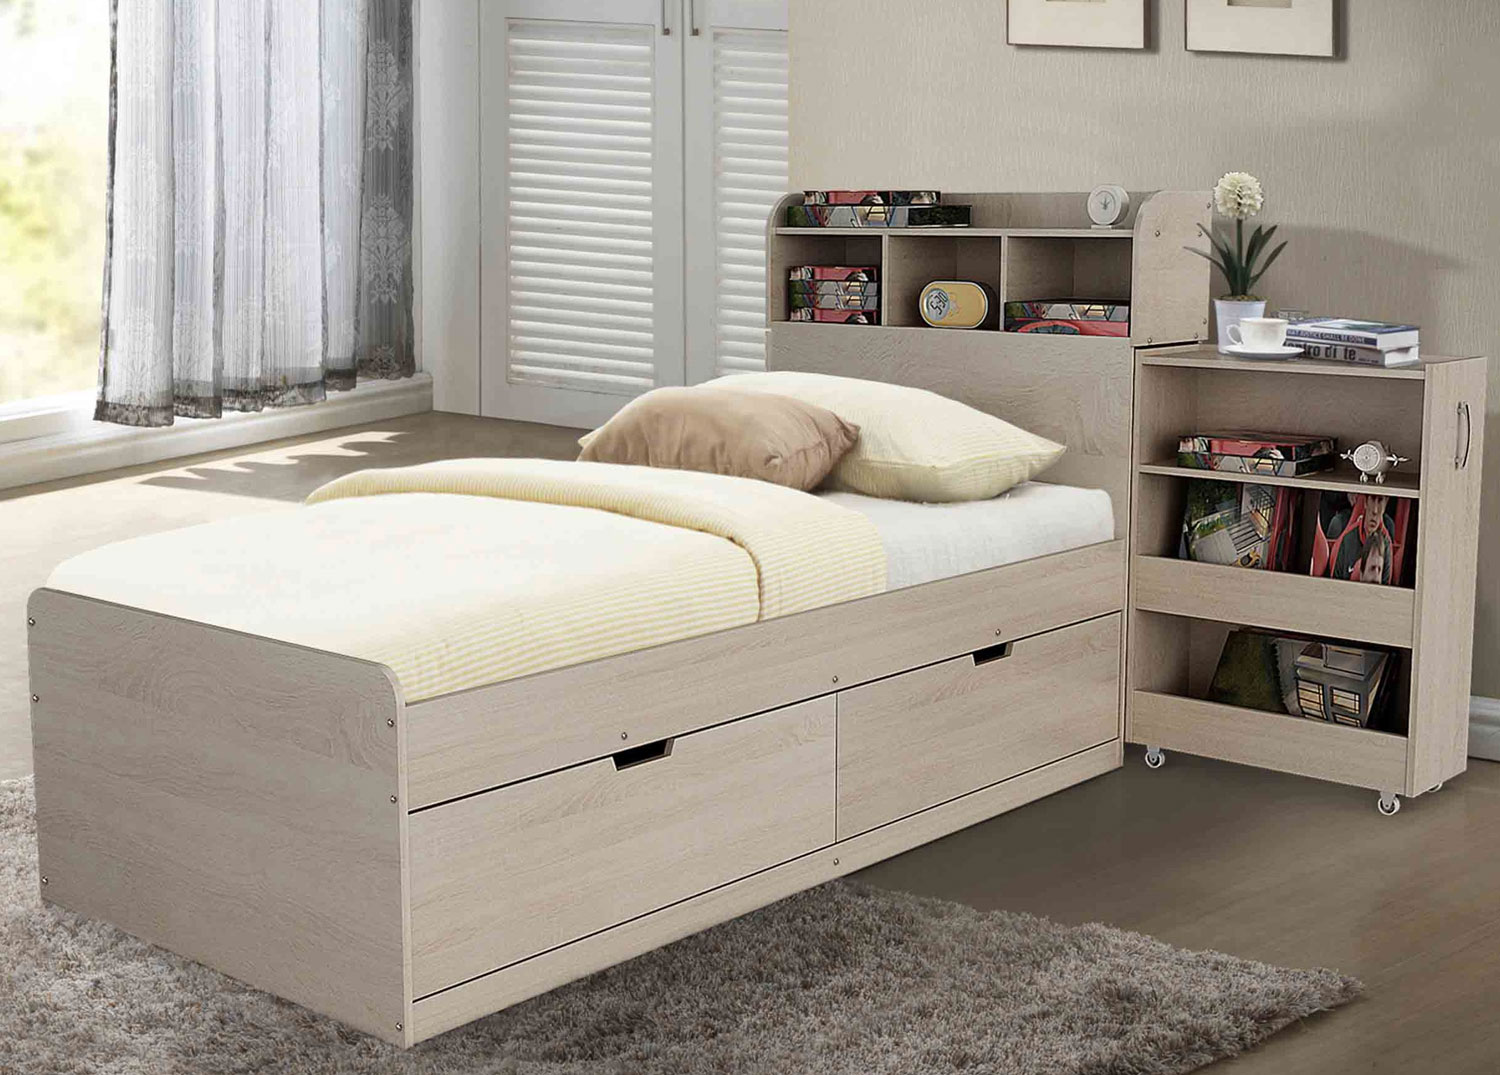 Picture of: A Avoca Bed With Slide Out Headboard Storage Drawers Hardings Furniture